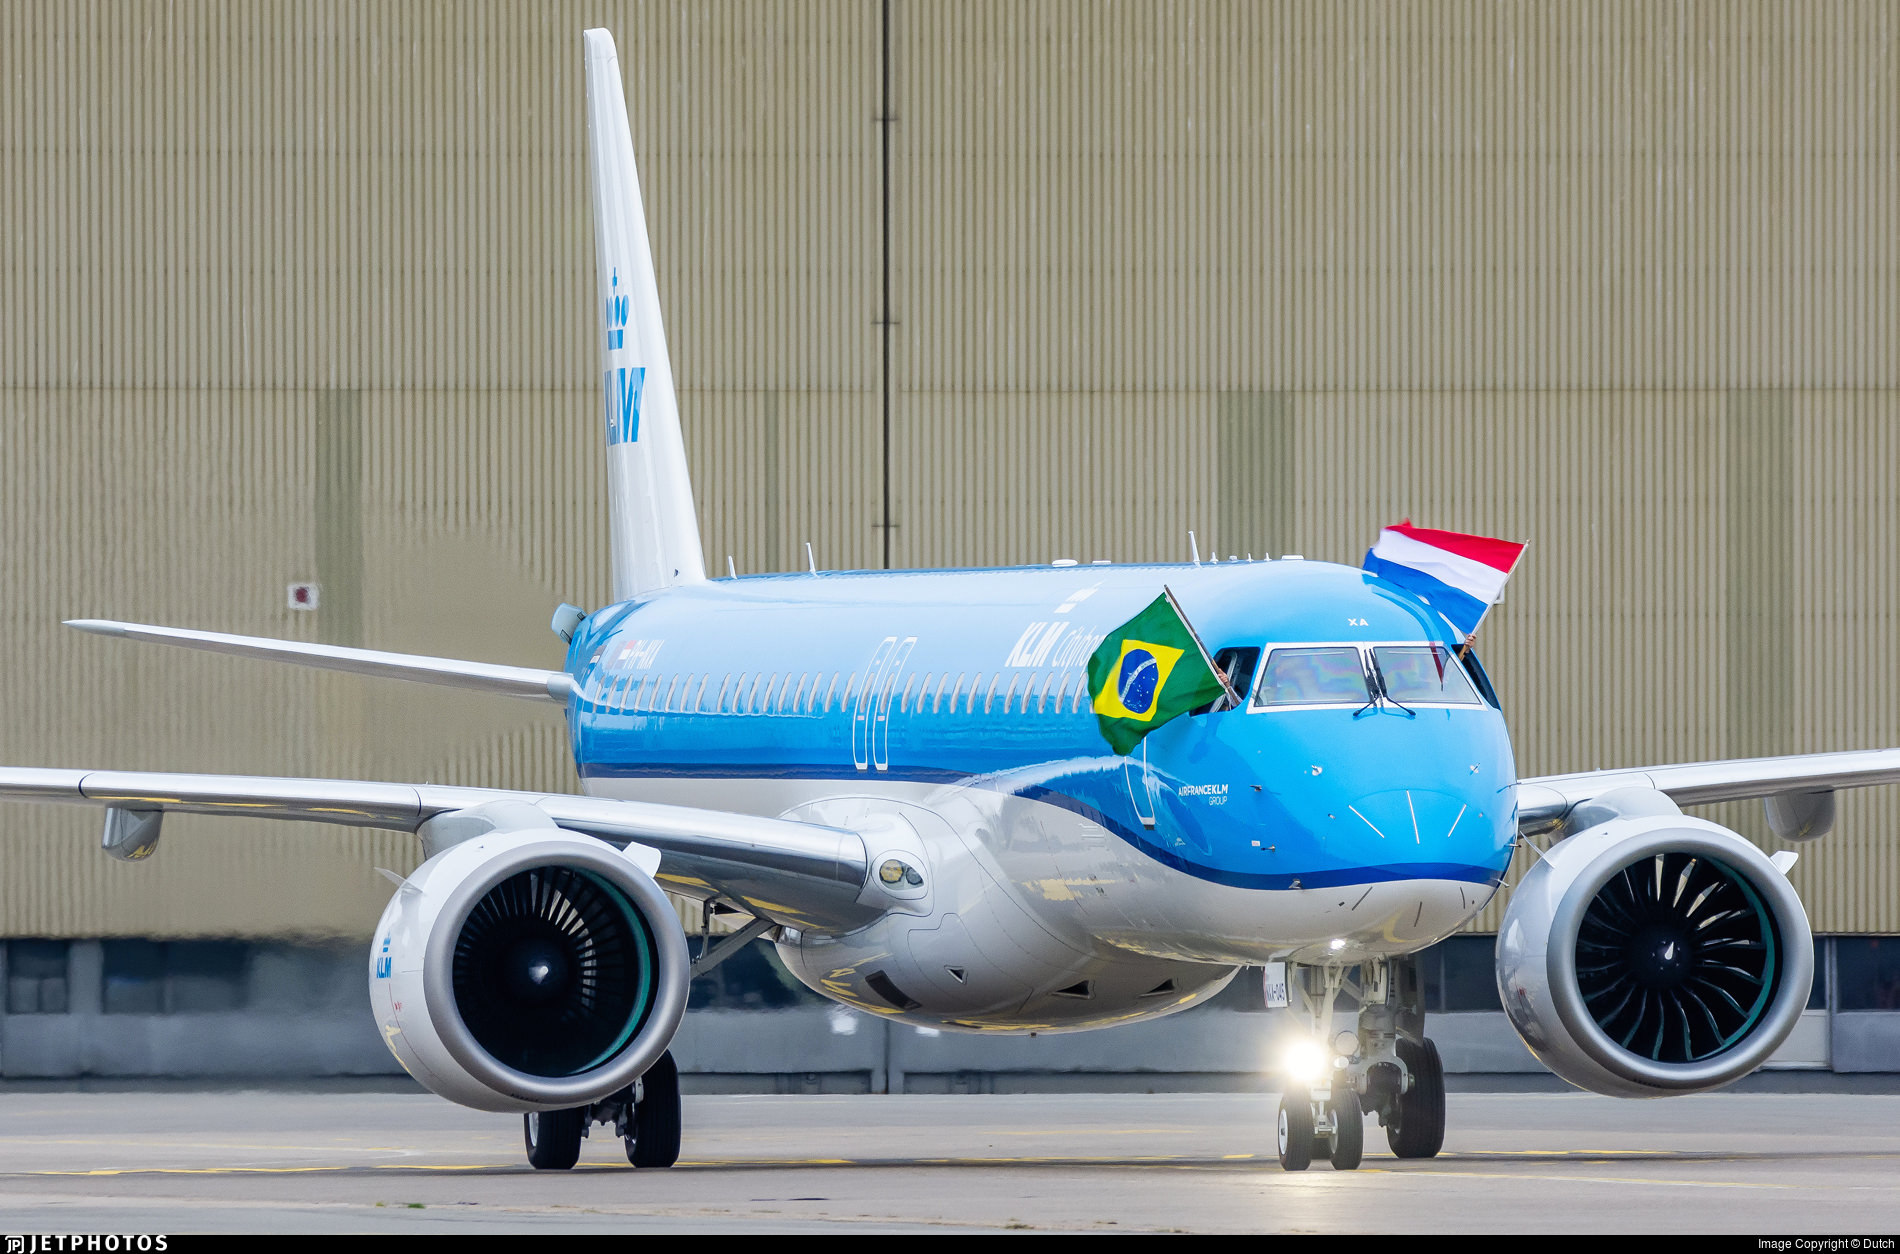 KLM's first Embraer E195-E2 arriving in Amsterdam on delivery with the captain waving a Dutch flag out the window and the First Officer waving a Brazilian flag  out their window. Embraer is a Brazilian company.